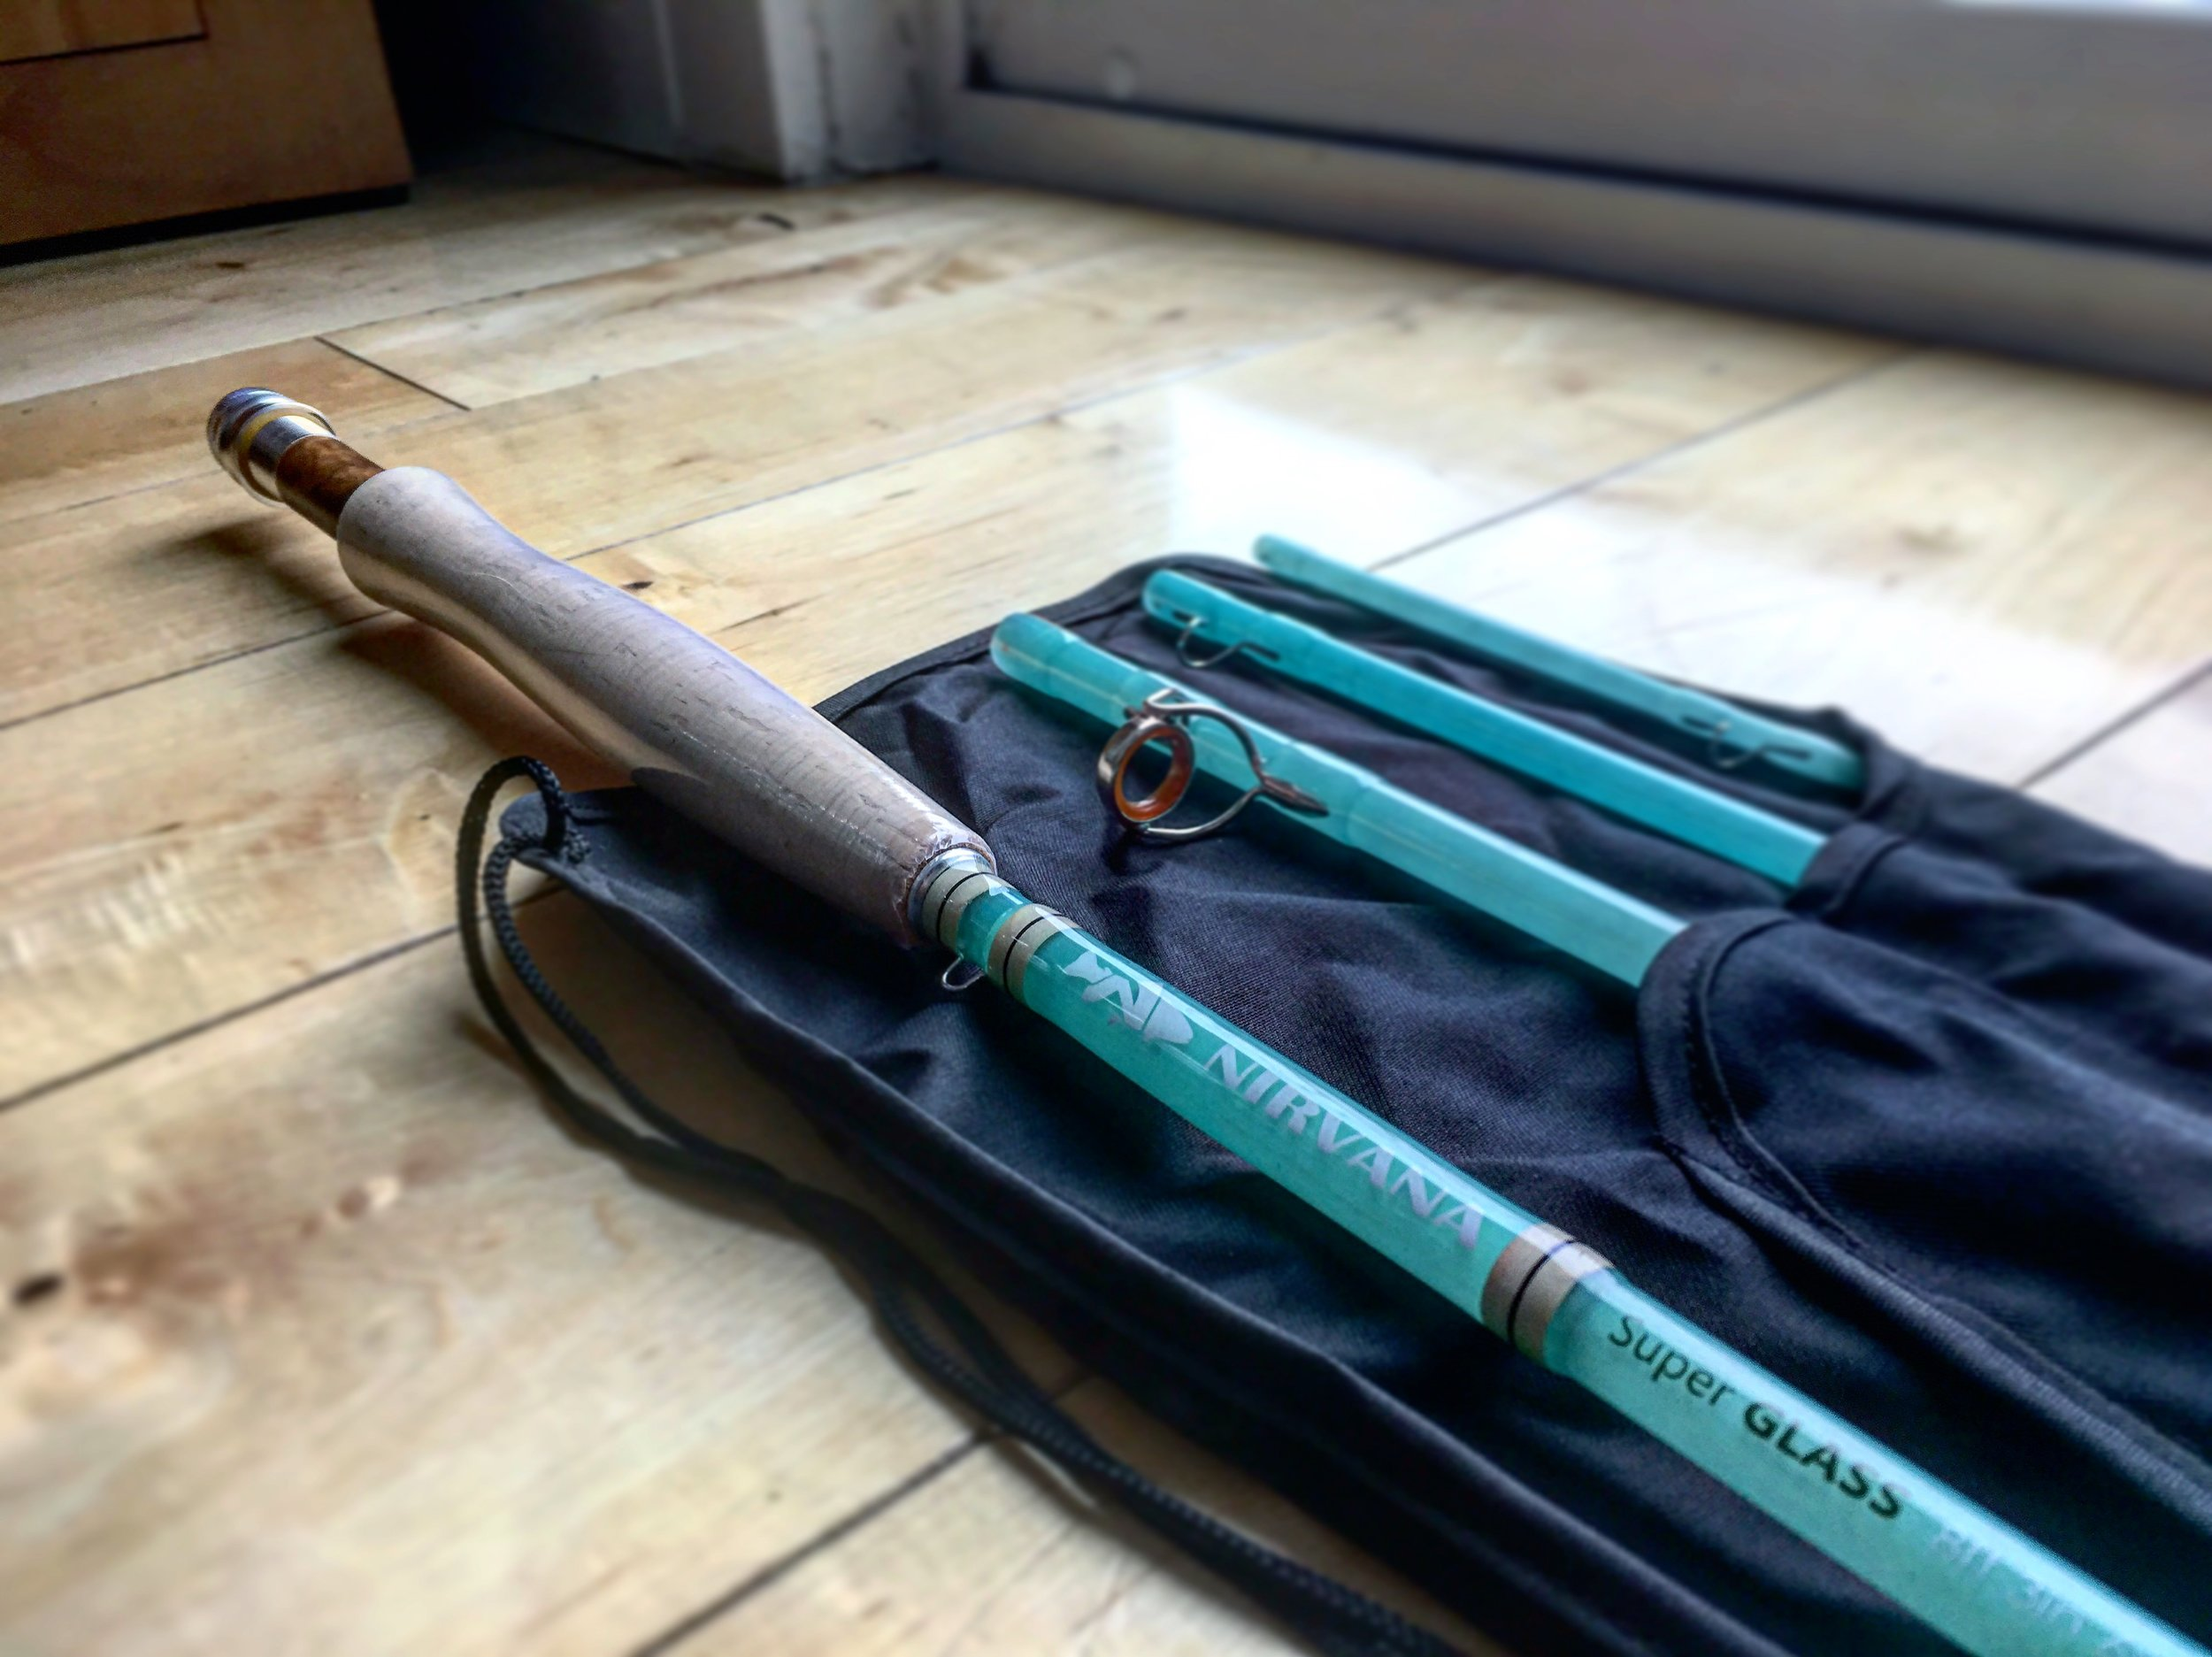 Take out your rod and cast around the house. Here is a great Super GLASS fly rod by Nirvana that is excellent for fishing small creeks. It is one of my favorites to take out and practice with.